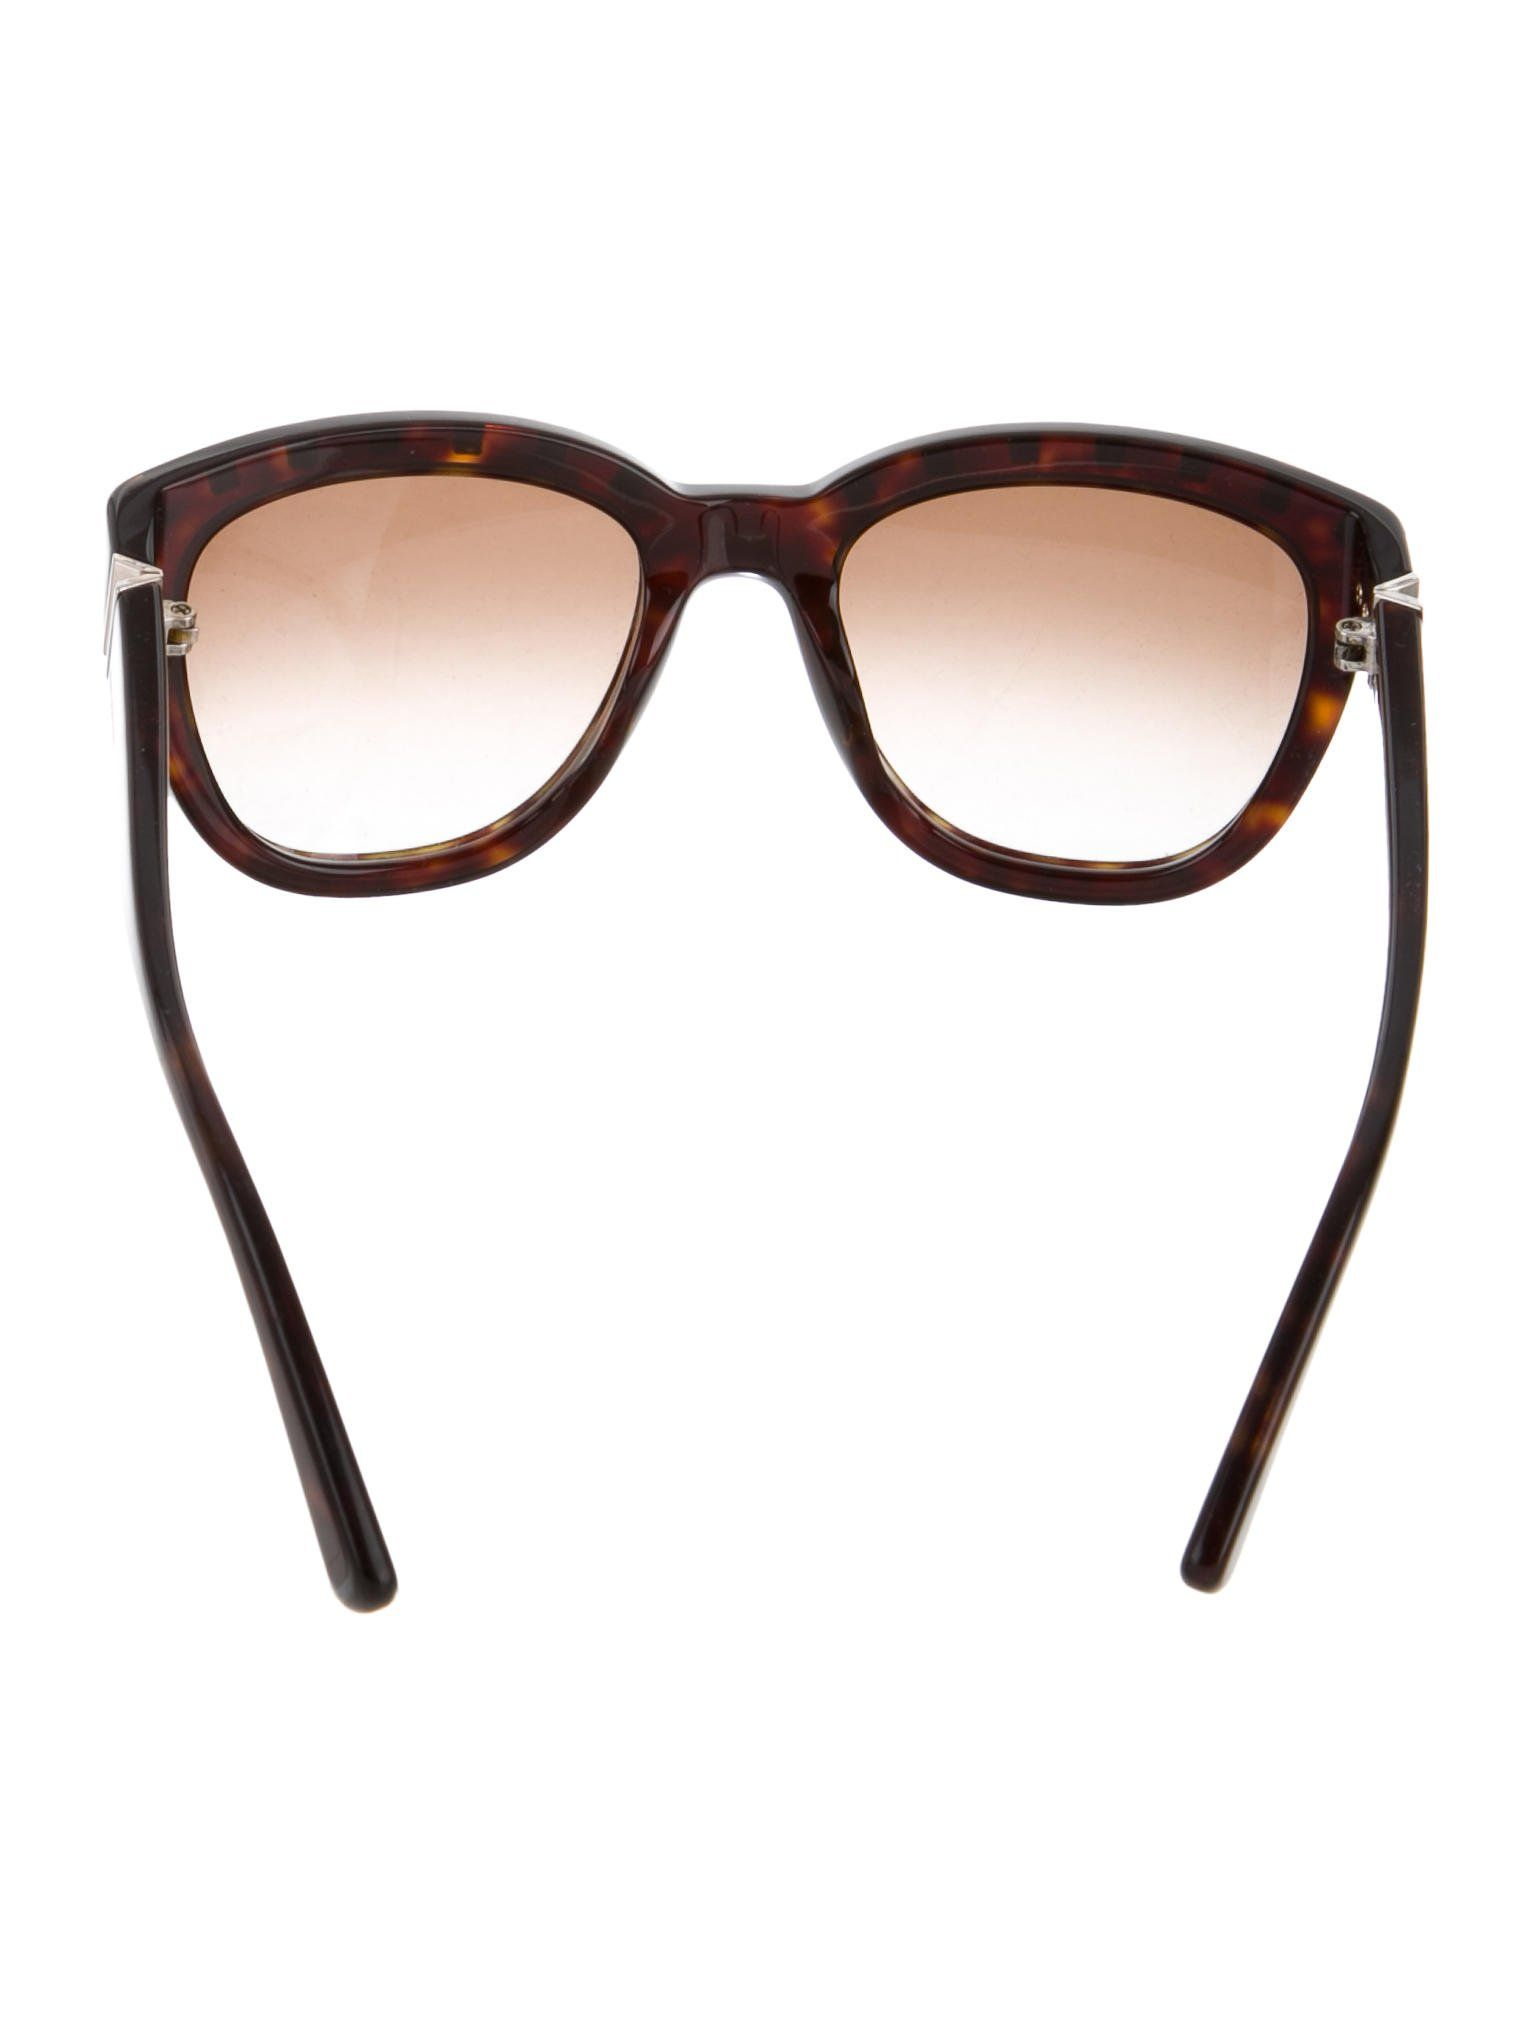 468a893bdf340 Brown Valentino Rockstud round sunglasses with tinted lenses and silver-tone  pyramid studs at top. Includes case.